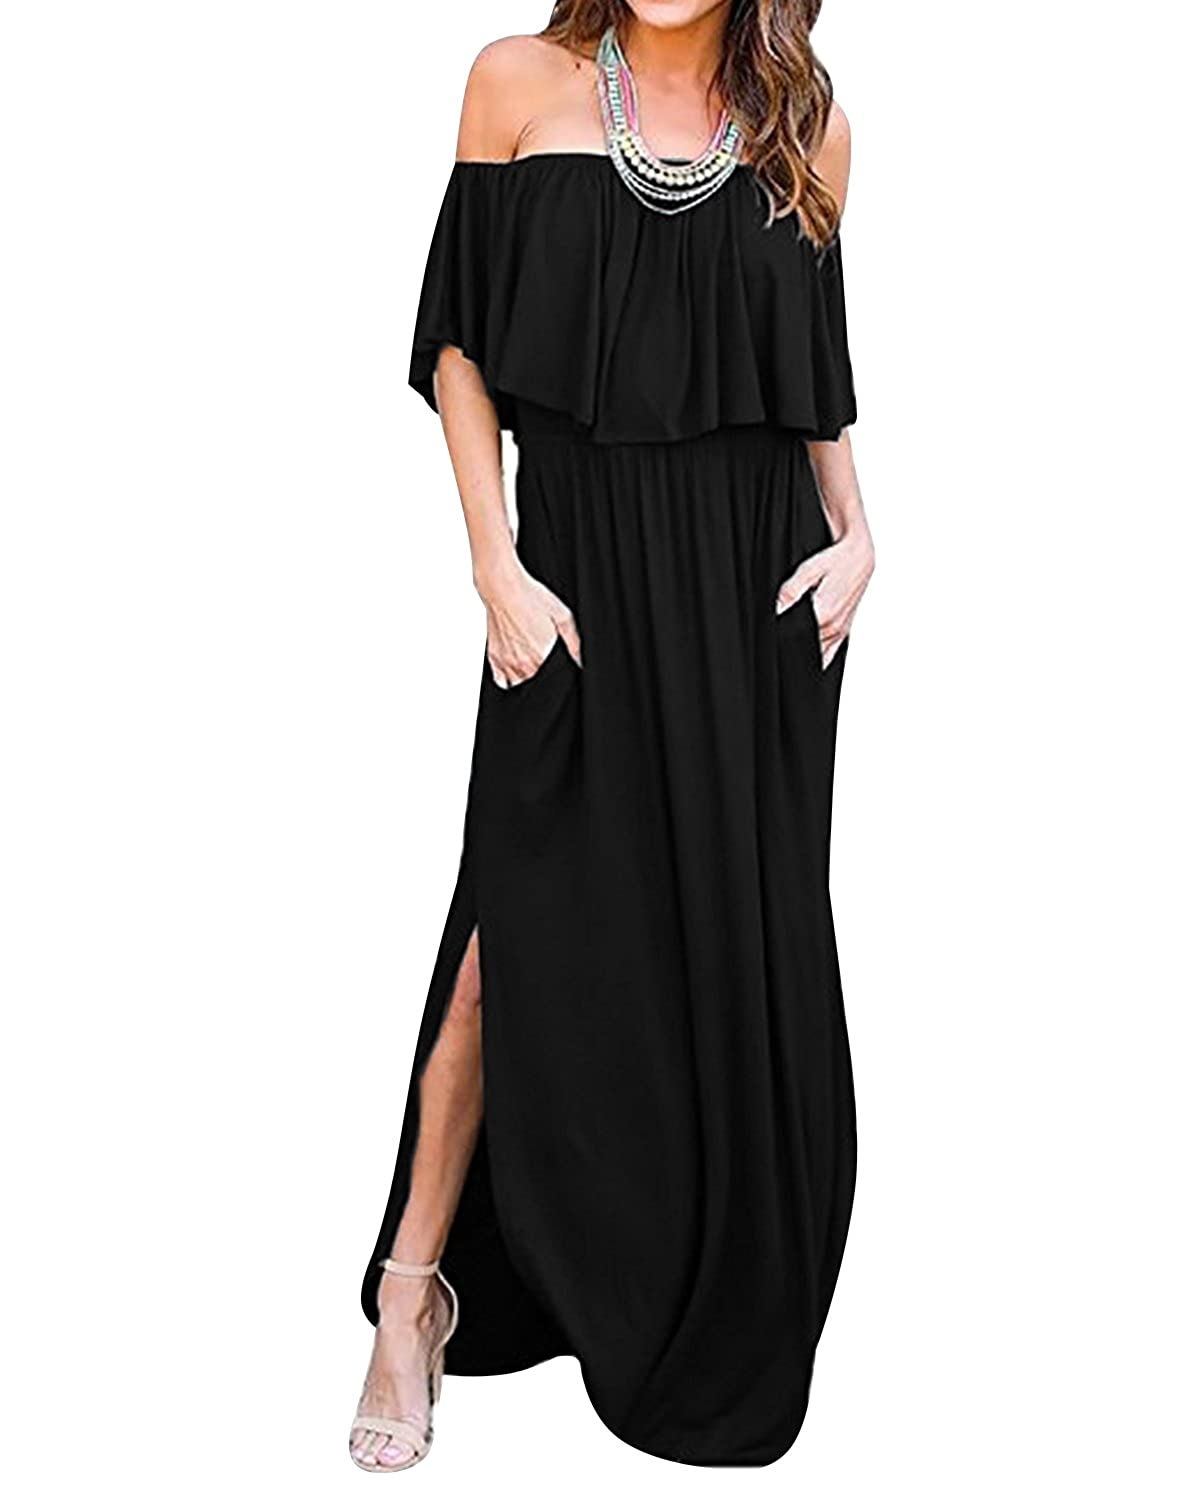 df4d176045a Top 10 wholesale Navy Off The Shoulder Maxi Dress - Chinabrands.com